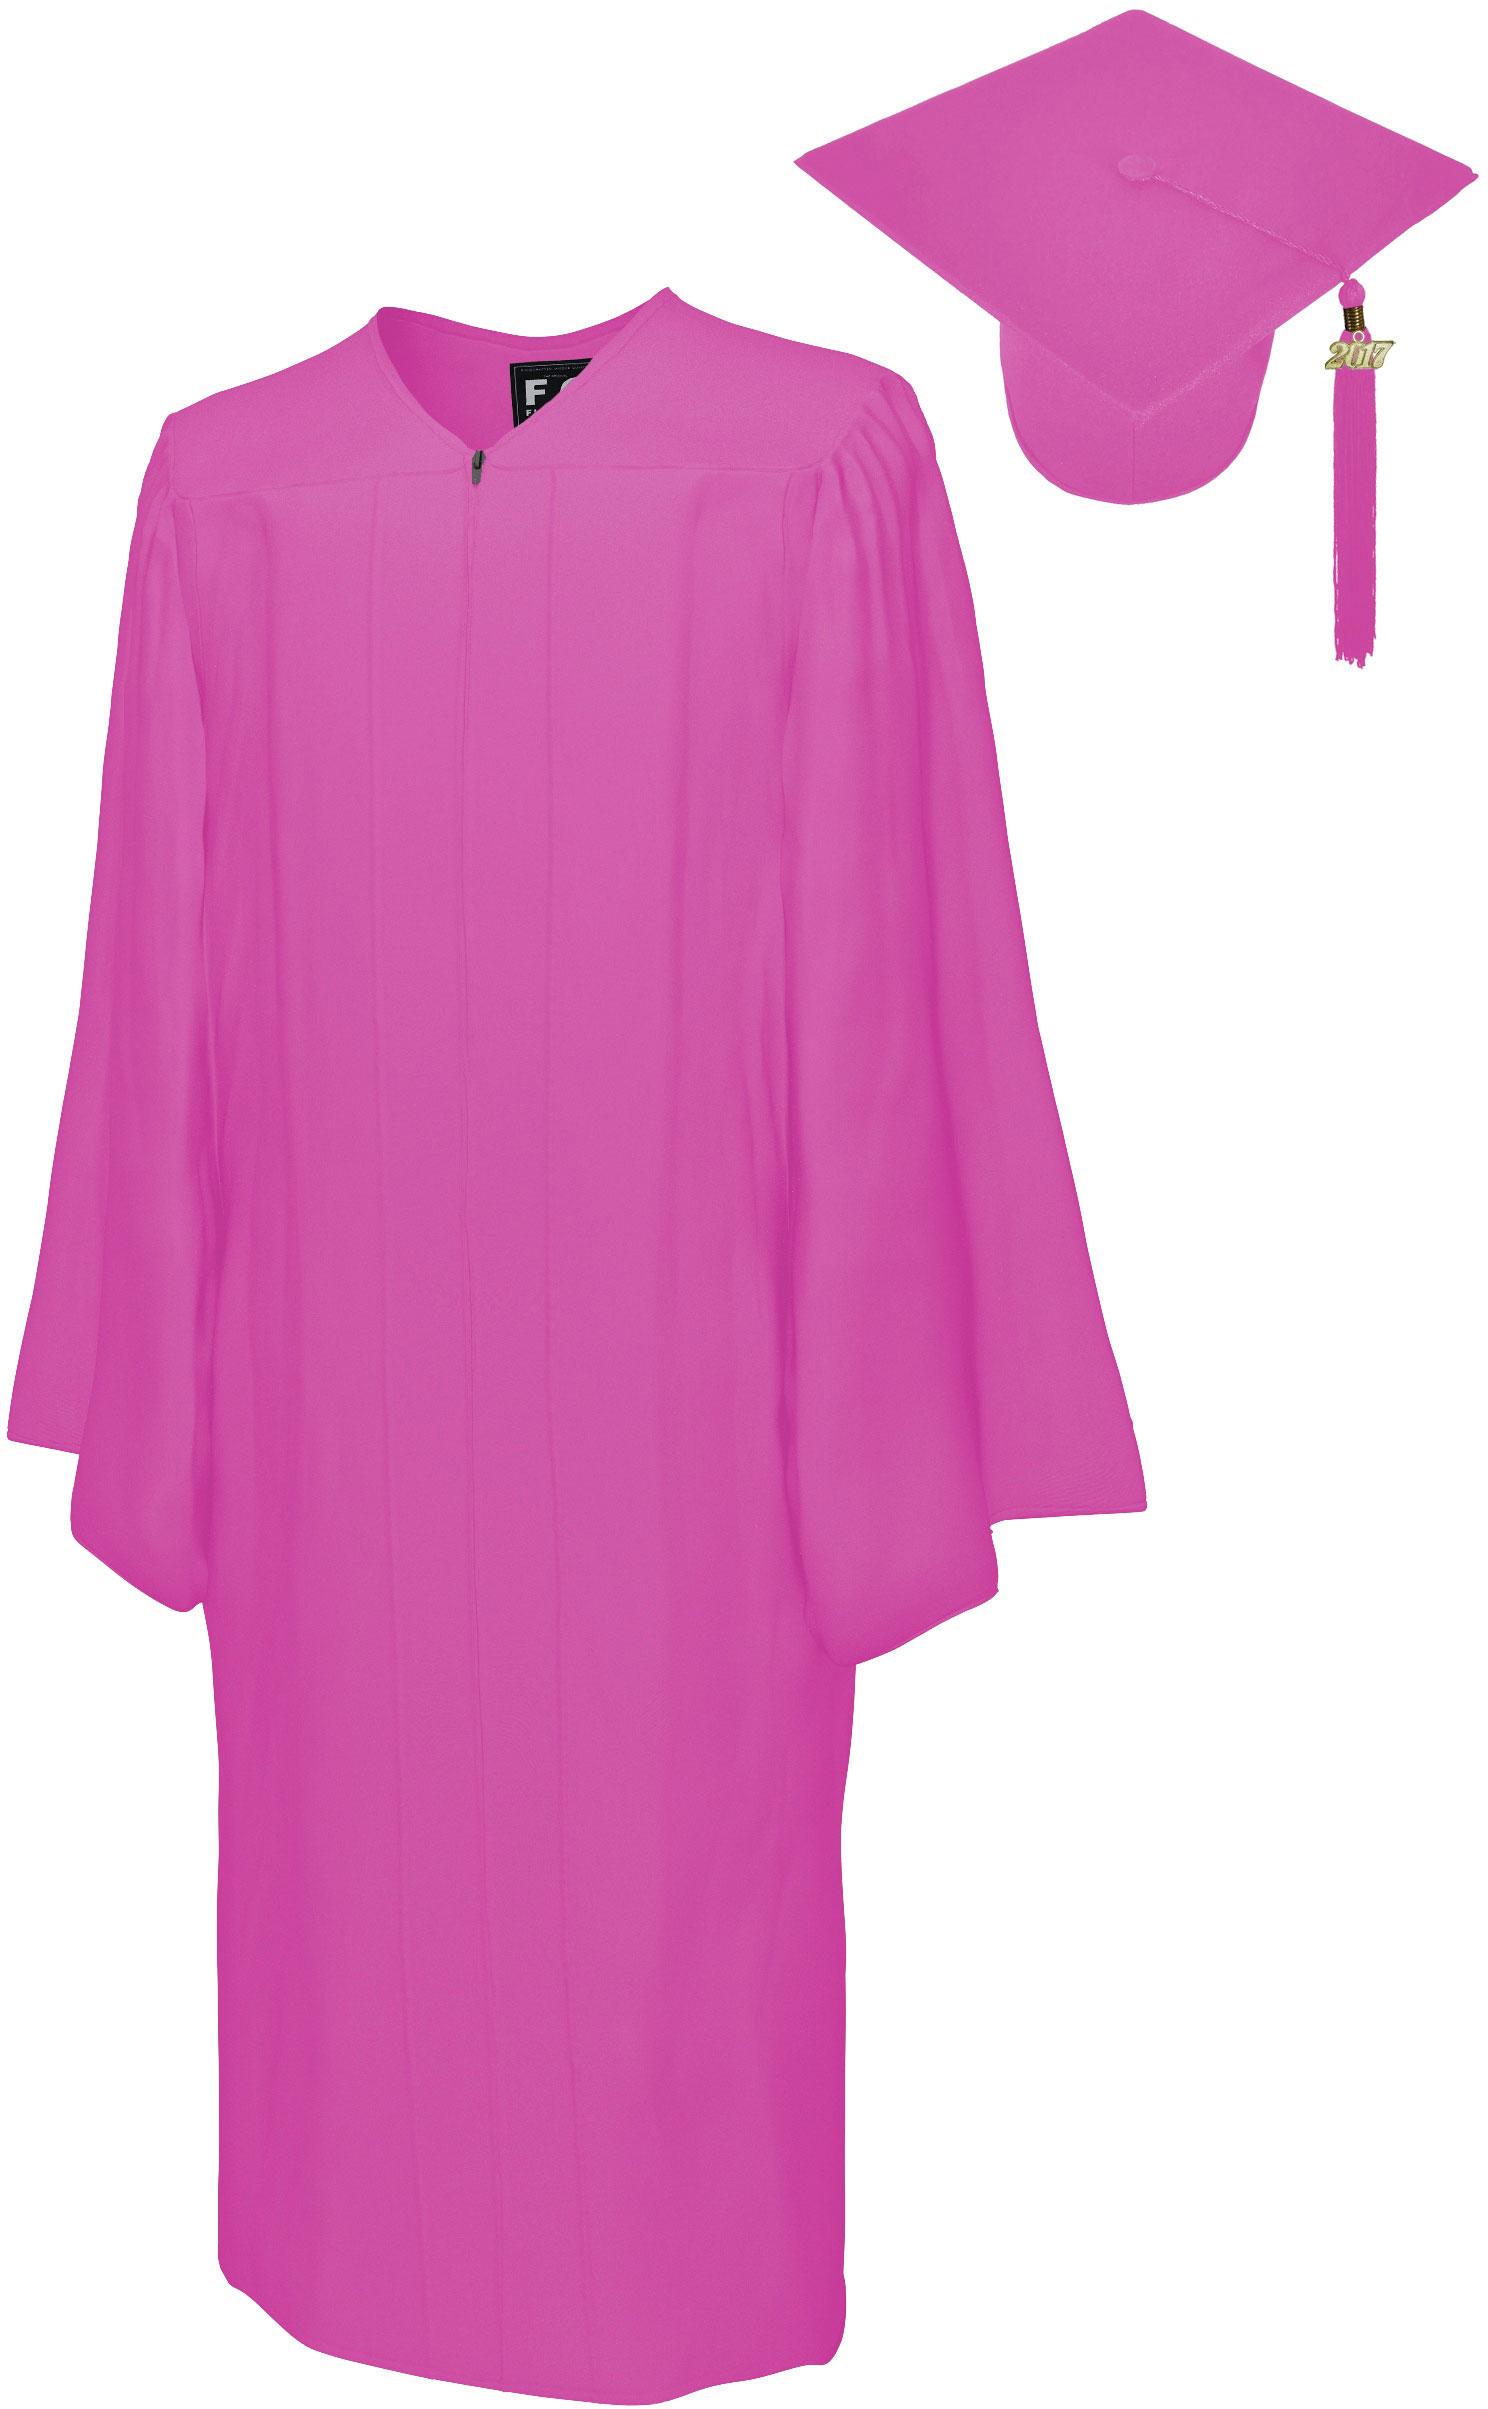 MATTE PINK CAP & GOWN BACHELOR GRADUATION SET-rs4251465601387